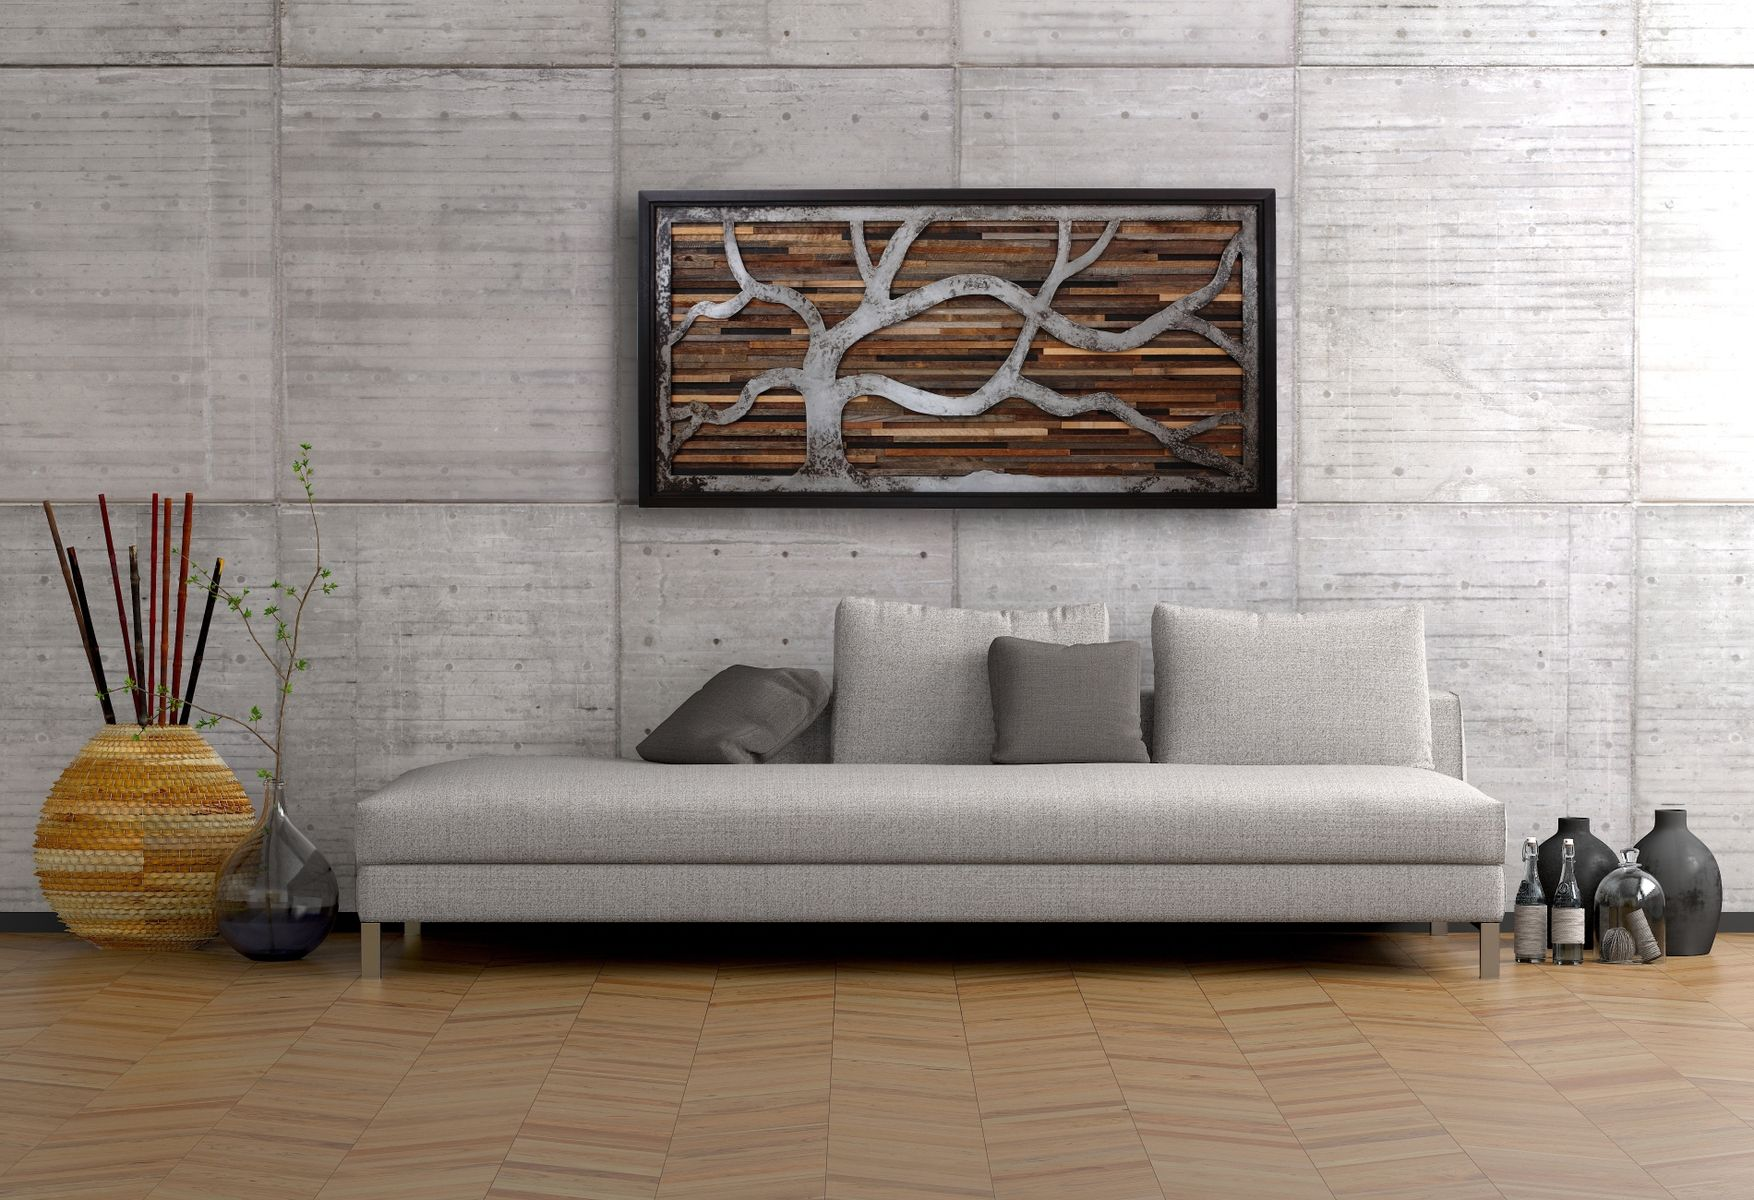 Handmade Reclaimed Wood Wall Art Made Of Old Barnwood And Rustic Steel